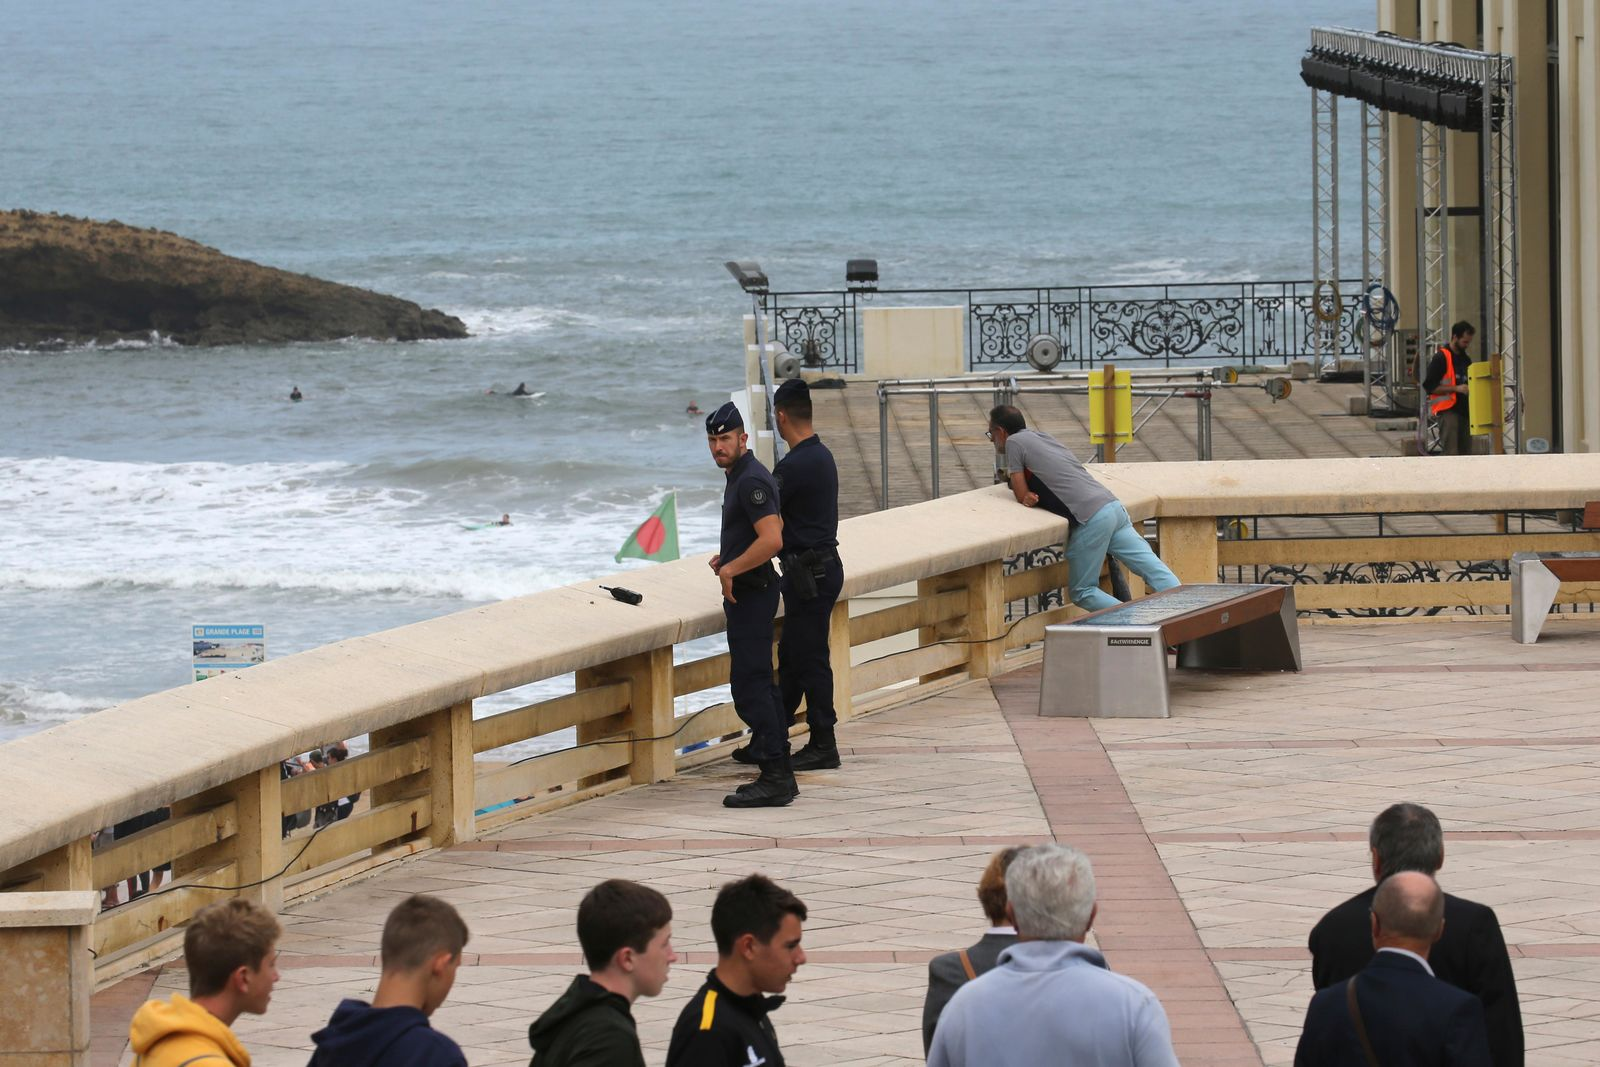 Riot police officers patrol by the municipal Casino, a venue of the upcoming G7 summit, Tuesday, Aug.20, 2019 in Biarritz, southwestern France. French police are setting up checkpoints and combing Atlantic beaches to secure the southwestern coast for world leaders coming for the G-7 summit. (AP Photo/Bob Edme)